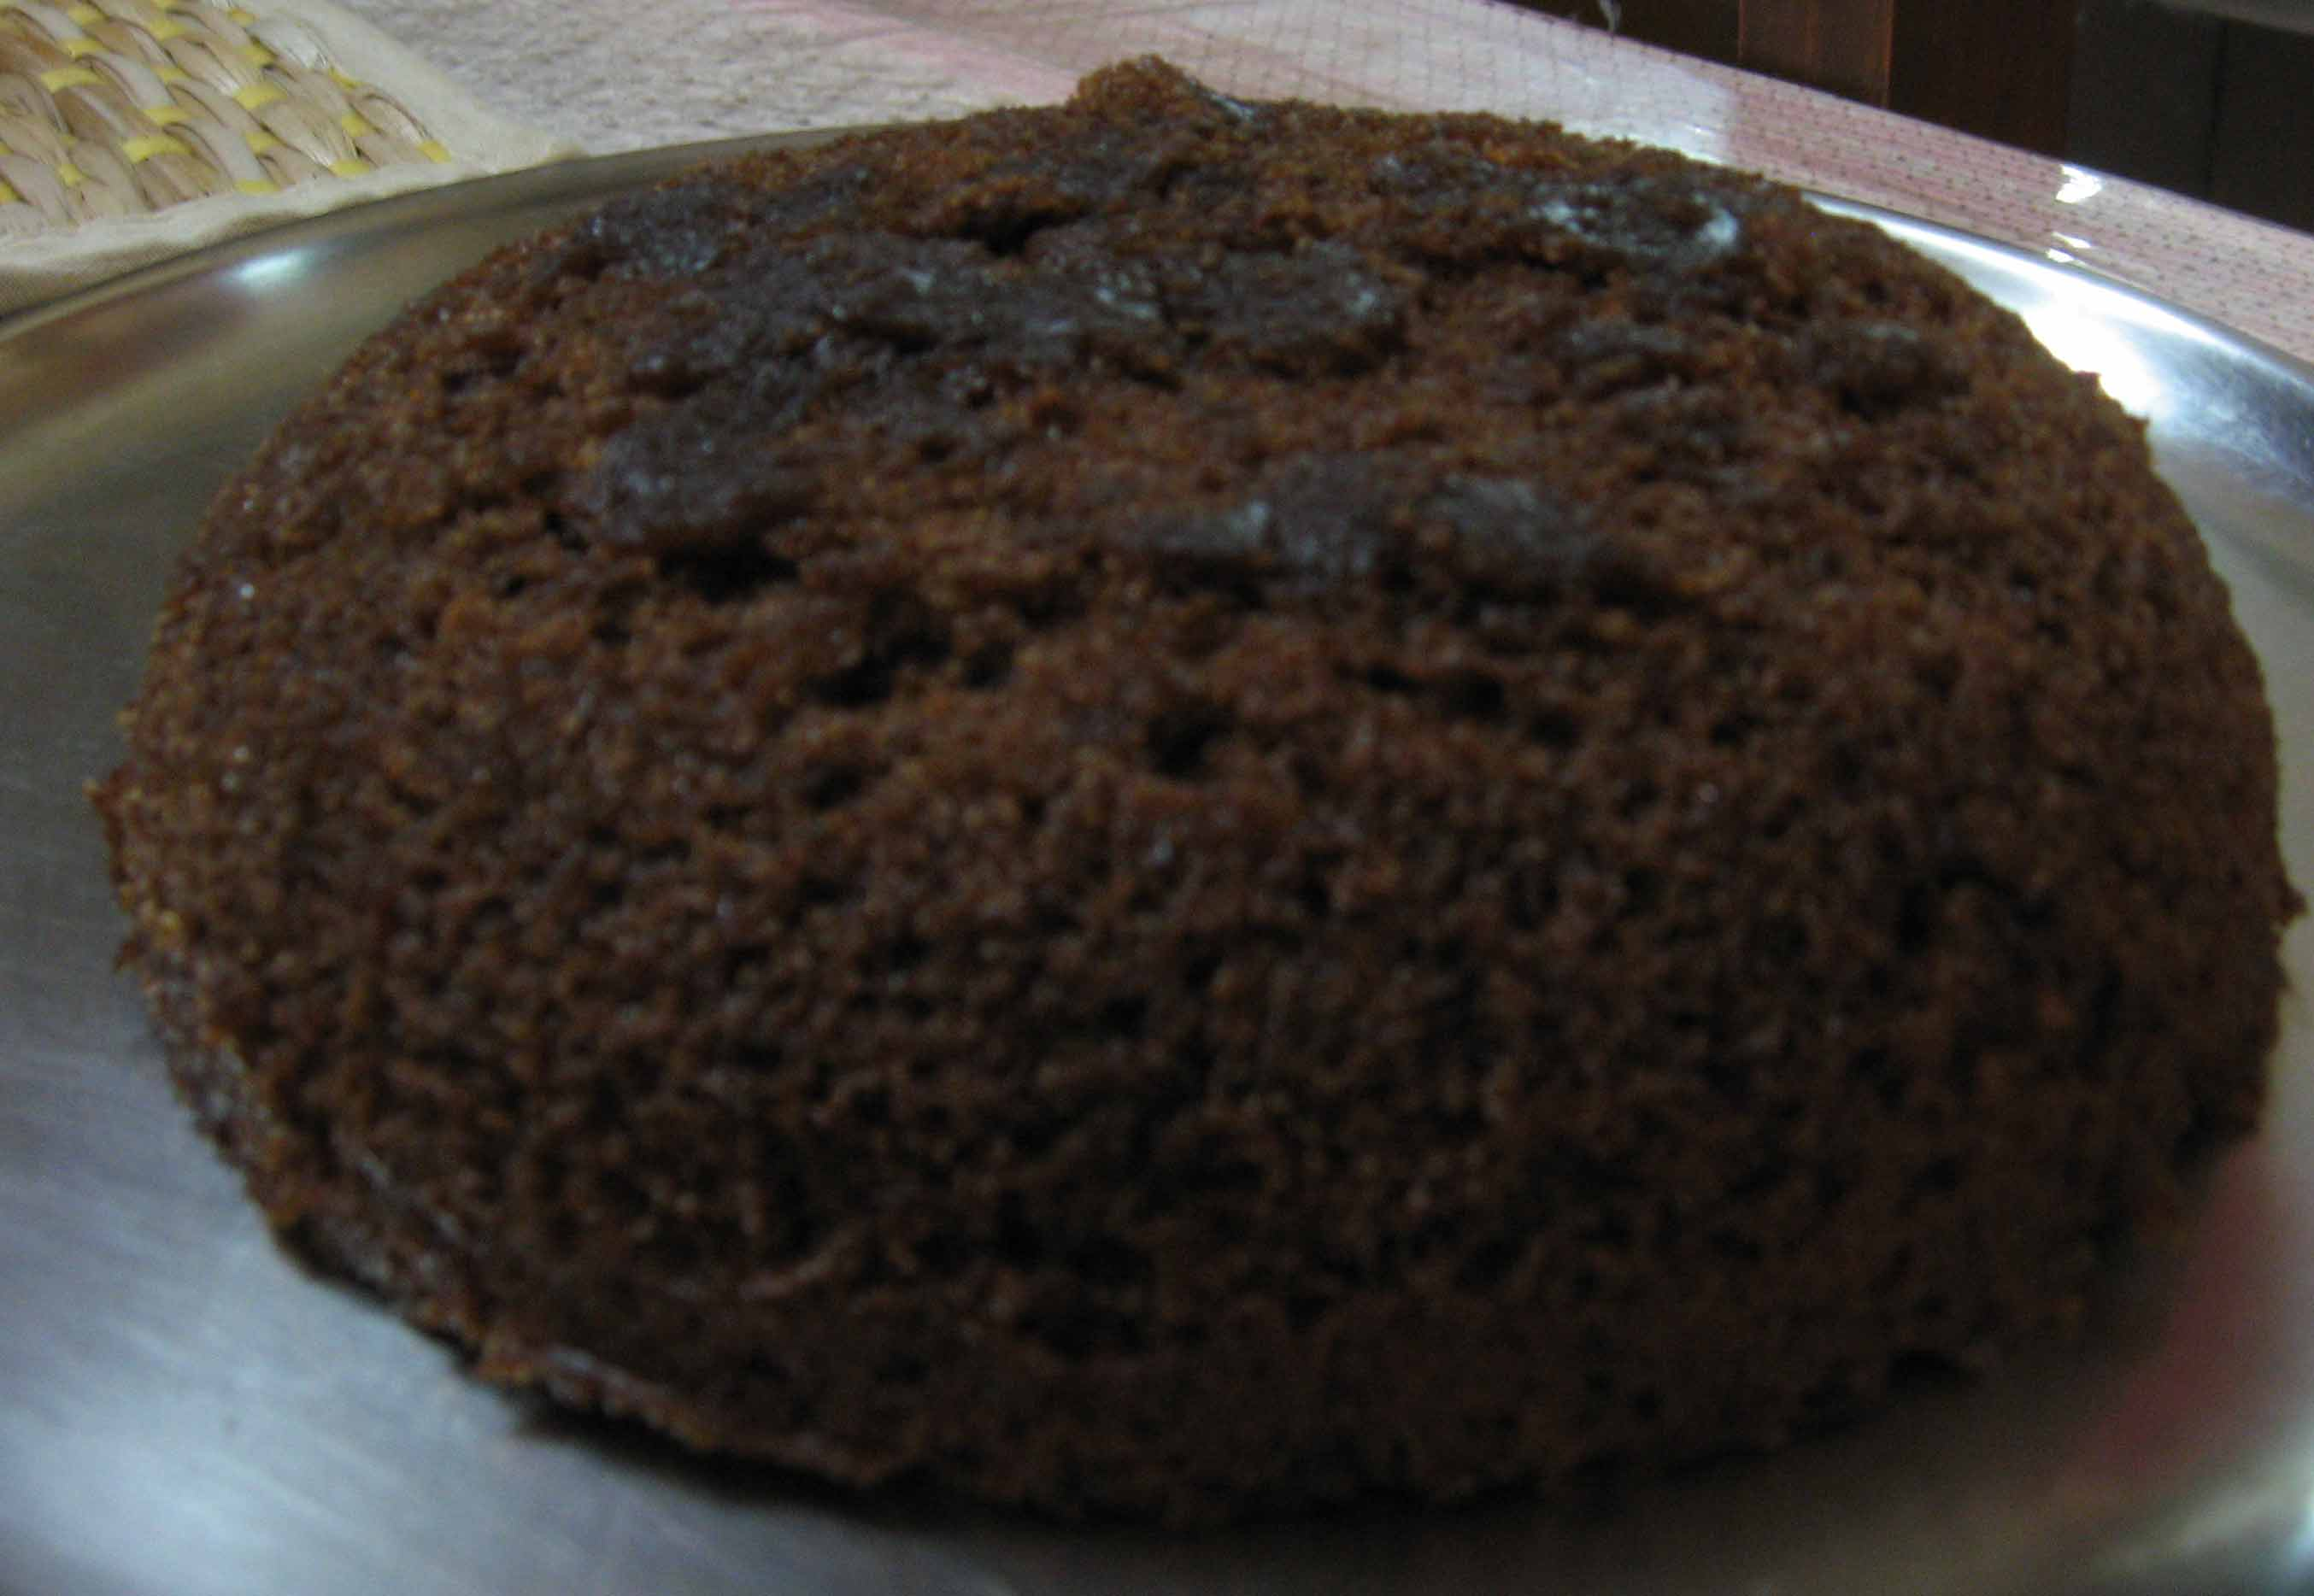 Microwave chocolate cake picture